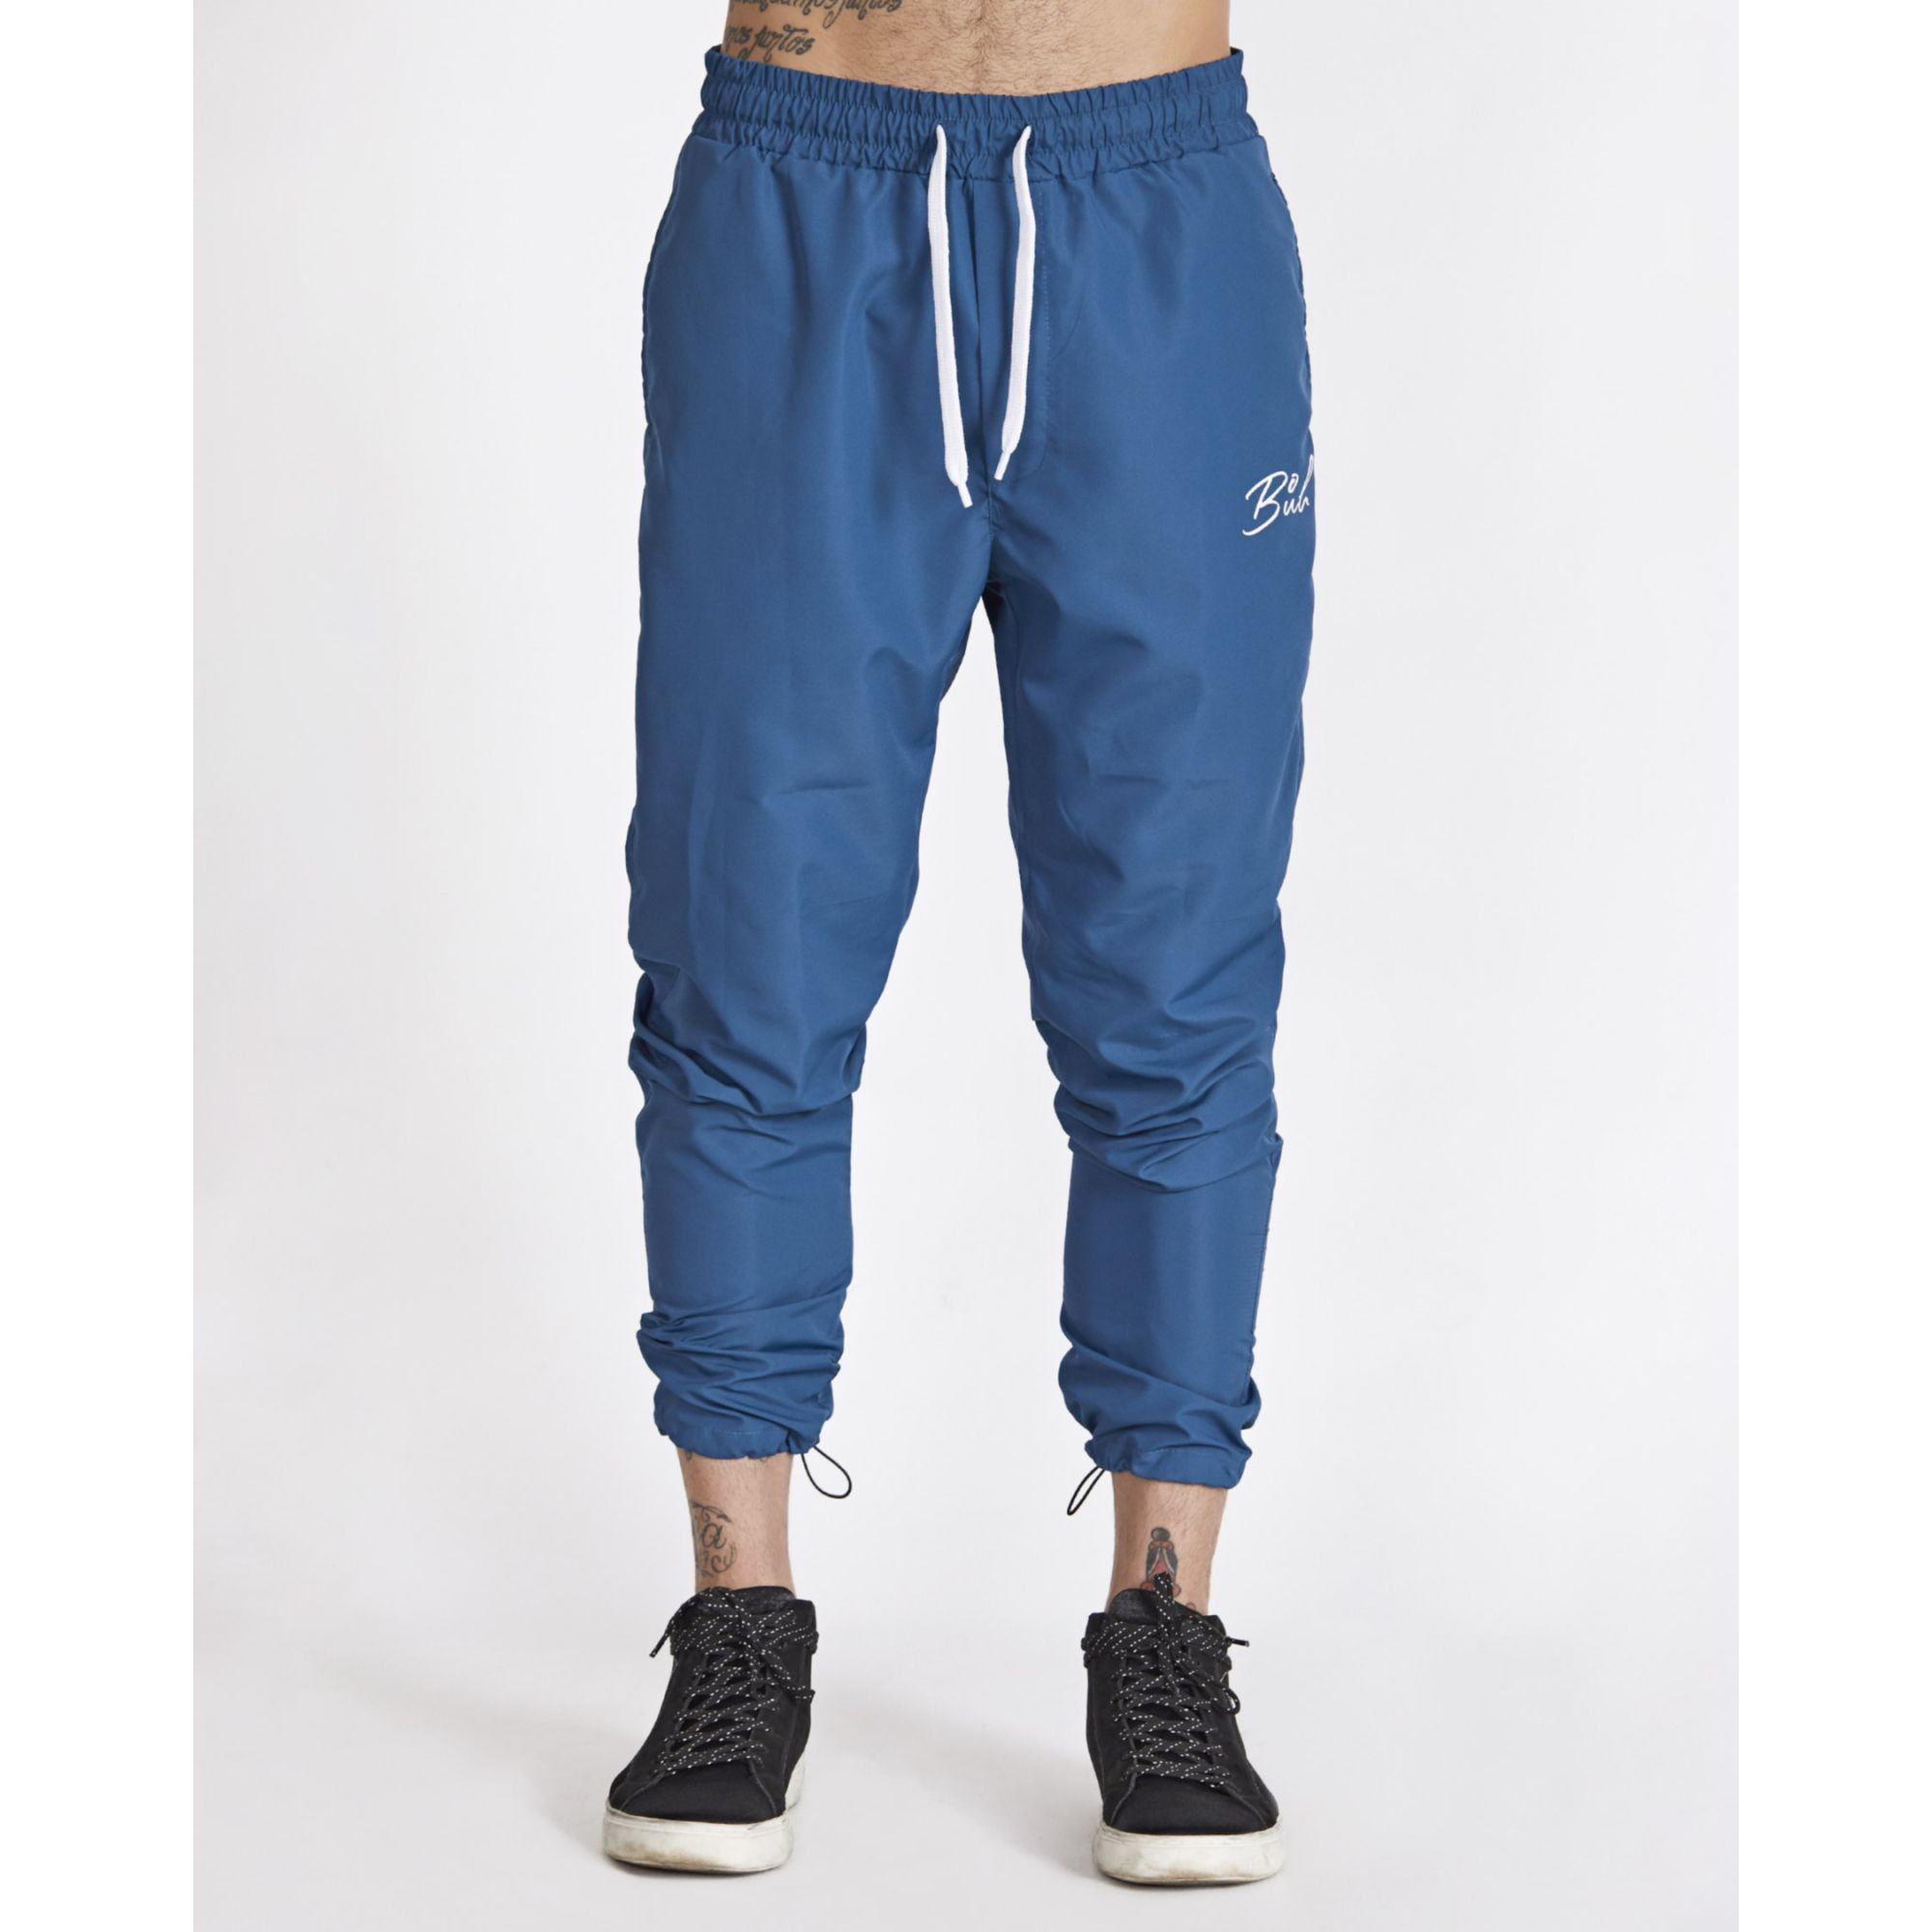 Calça Buh Tactel Blue & Rose